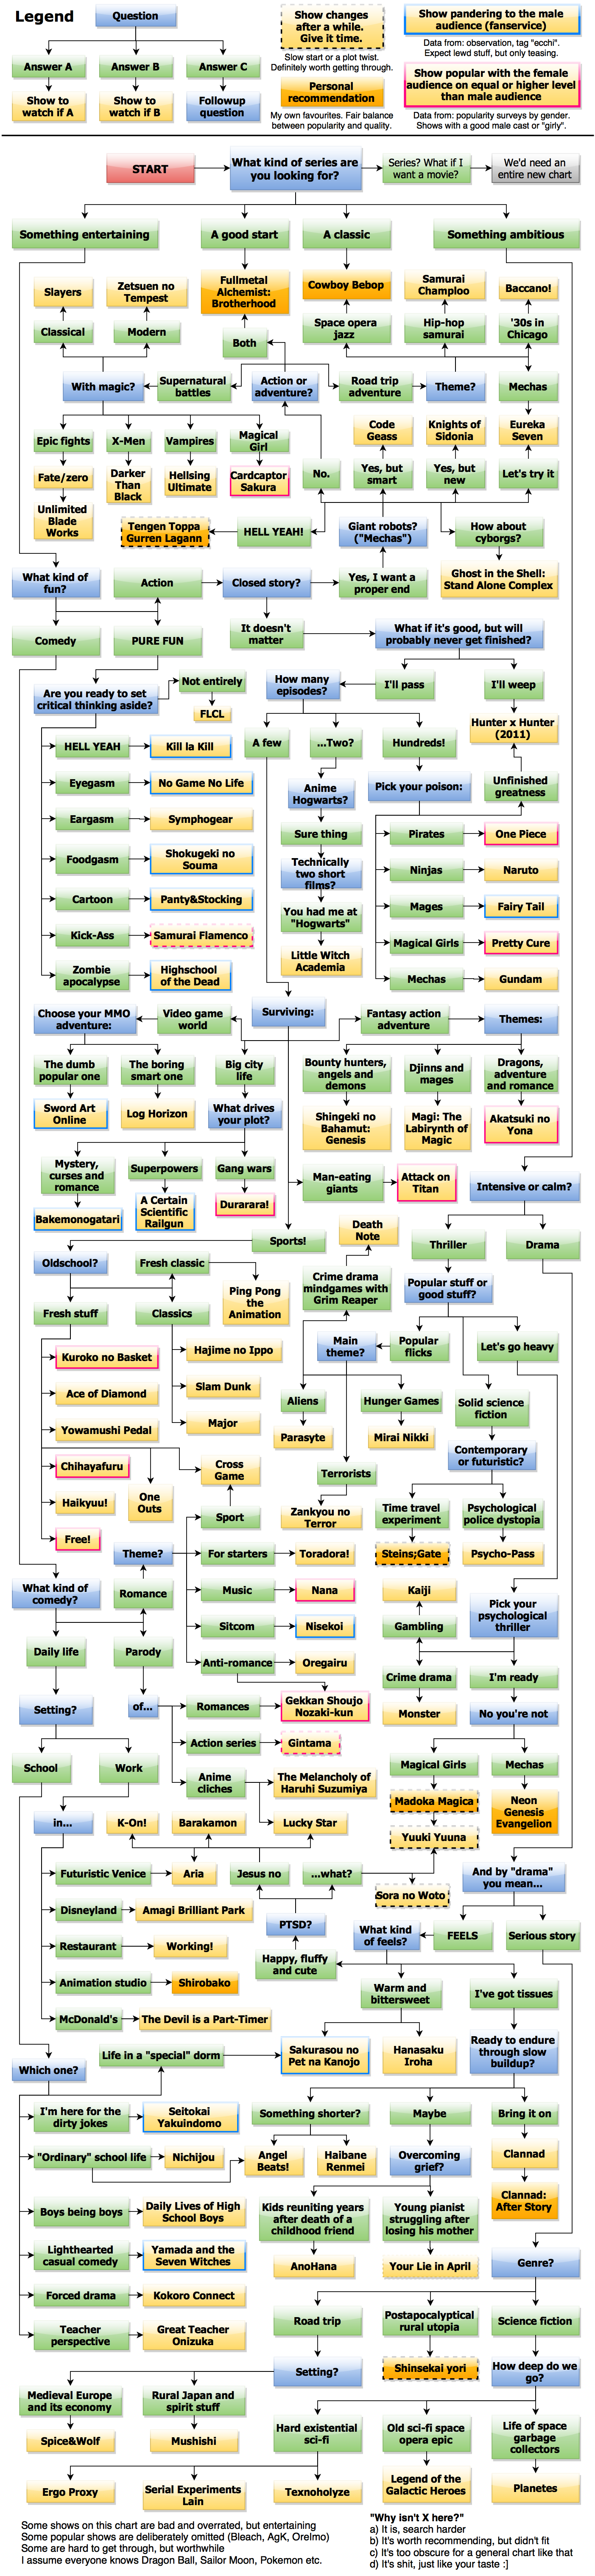 Imgur user lukeatlook created a flow chart to help recommend different types of anime series to other users take a look